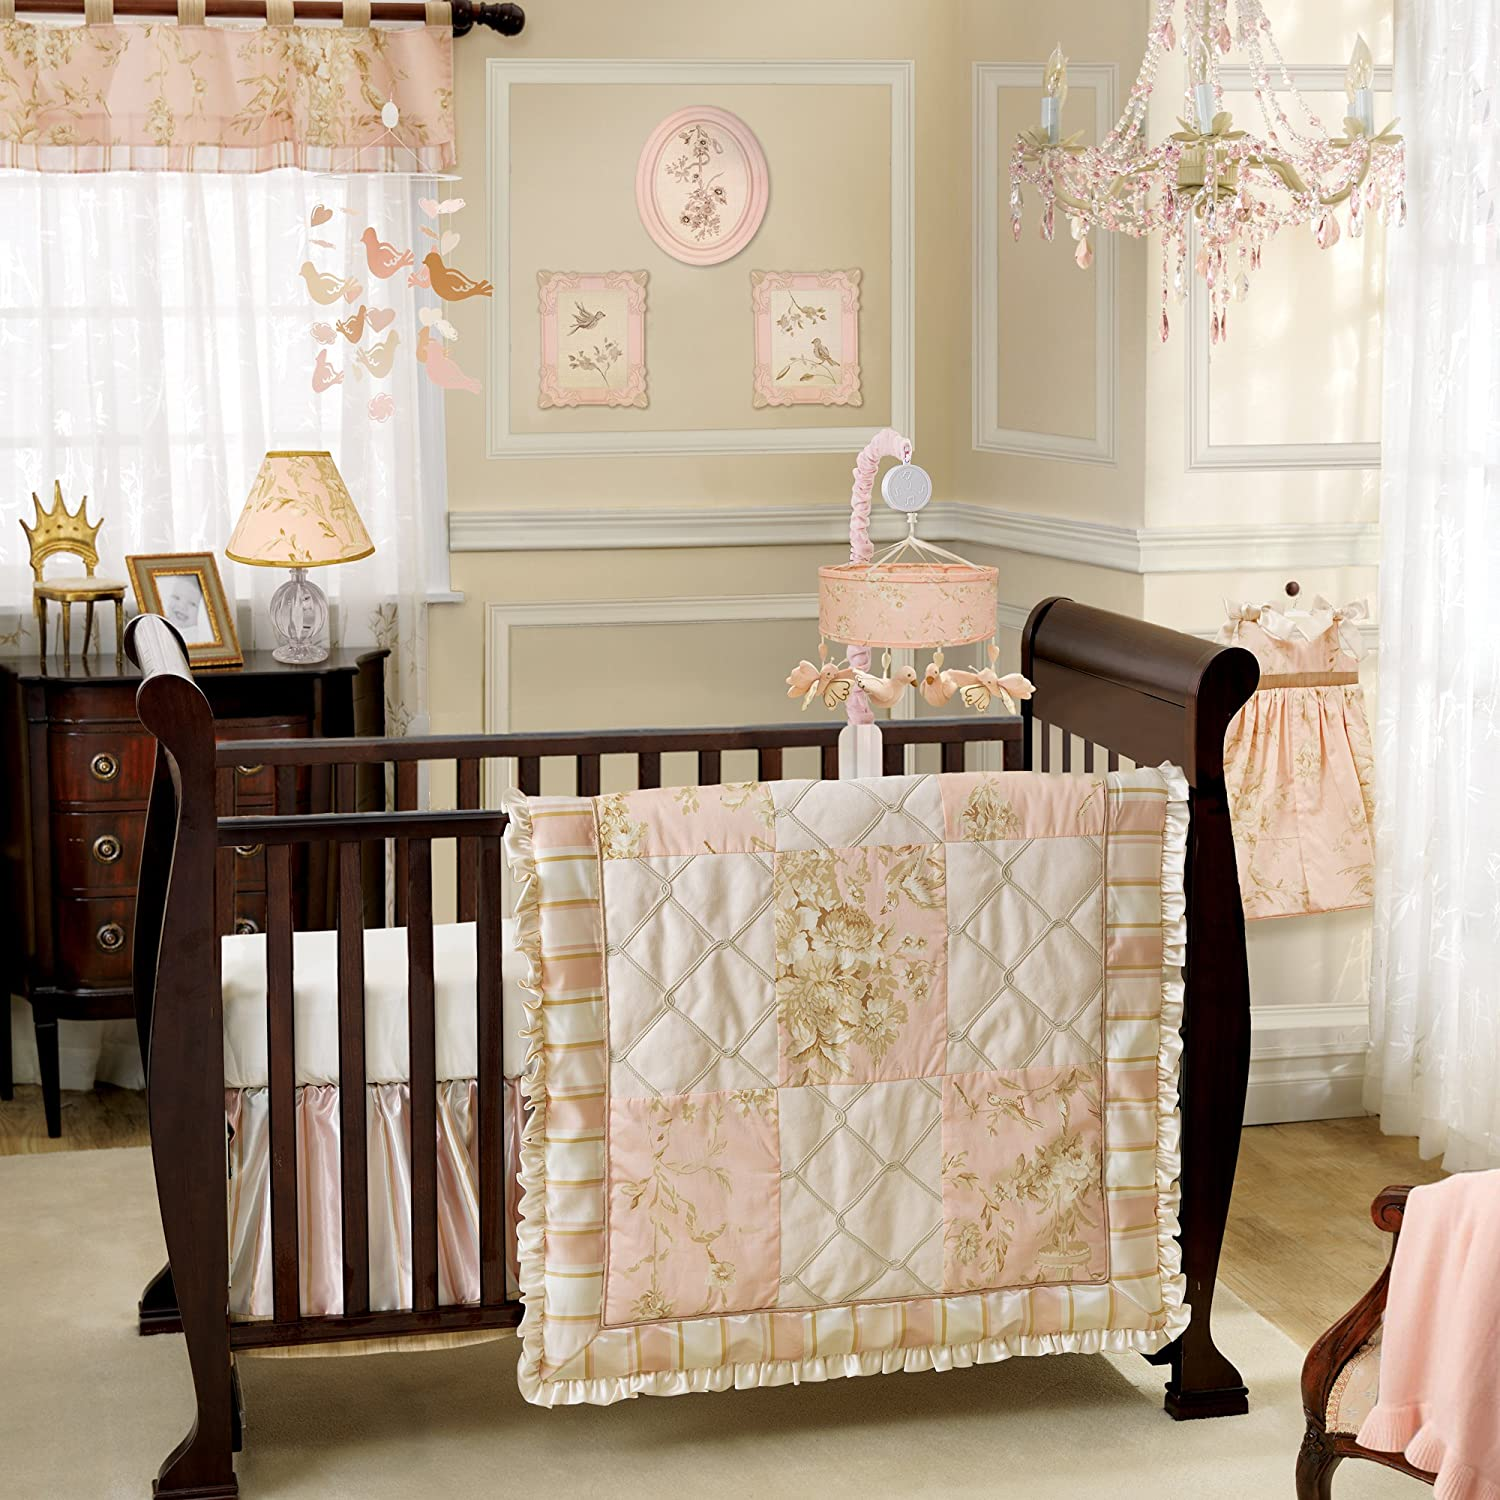 custom glamorous bedding lavender ideas aqua baby nursery and pin themes girl bed room lavendar